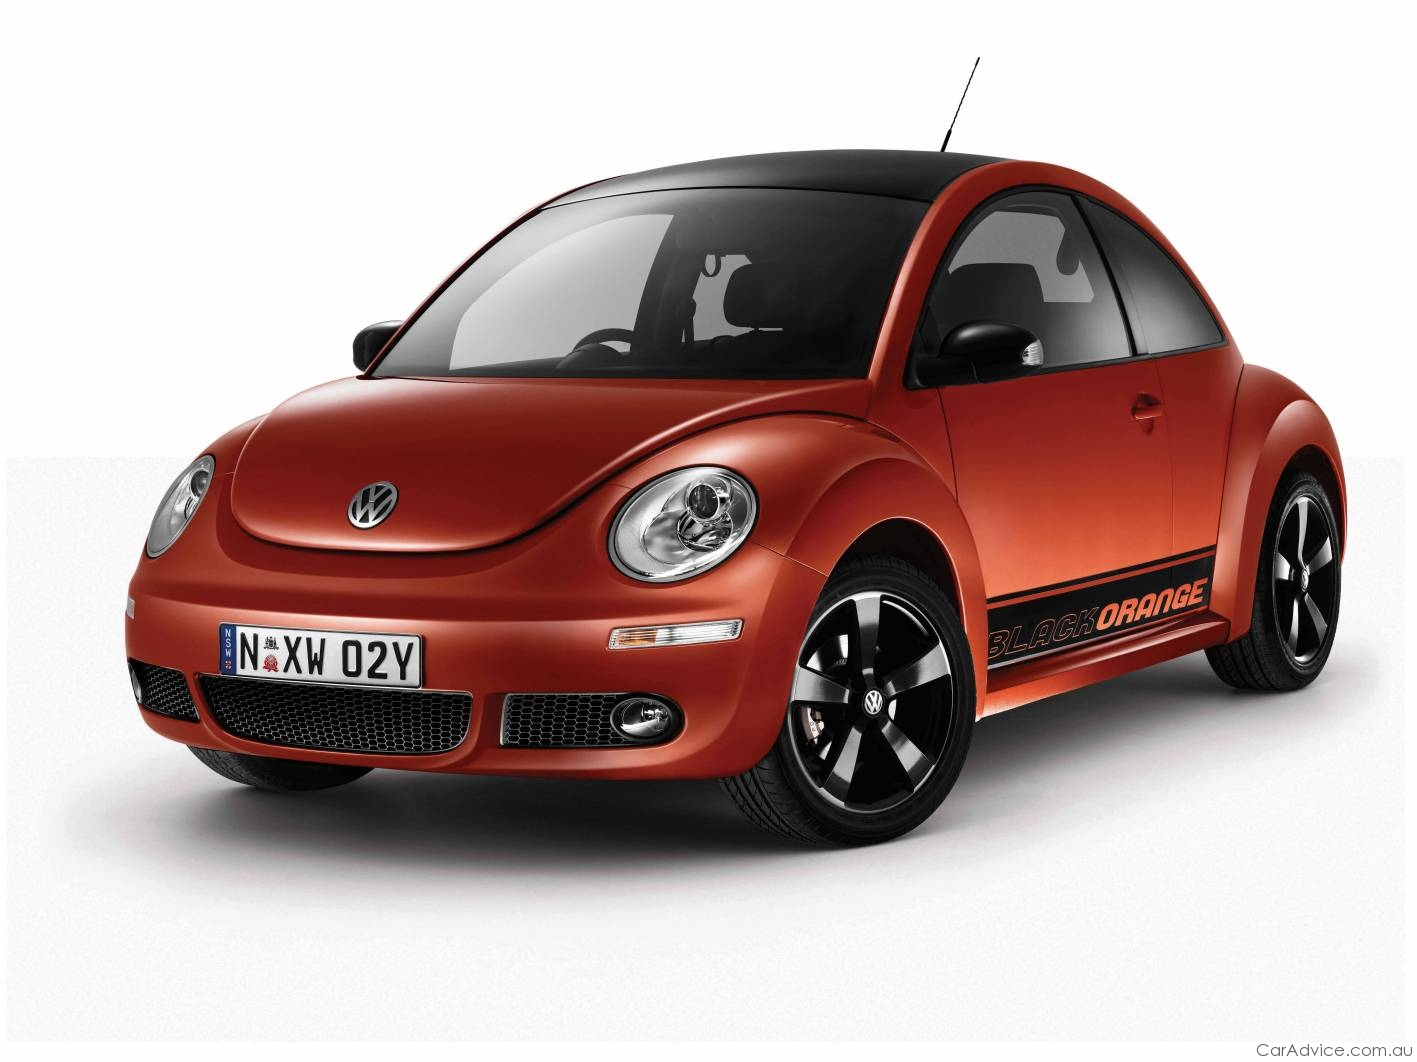 2010 volkswagen new beetle blackorange review top speed. Black Bedroom Furniture Sets. Home Design Ideas